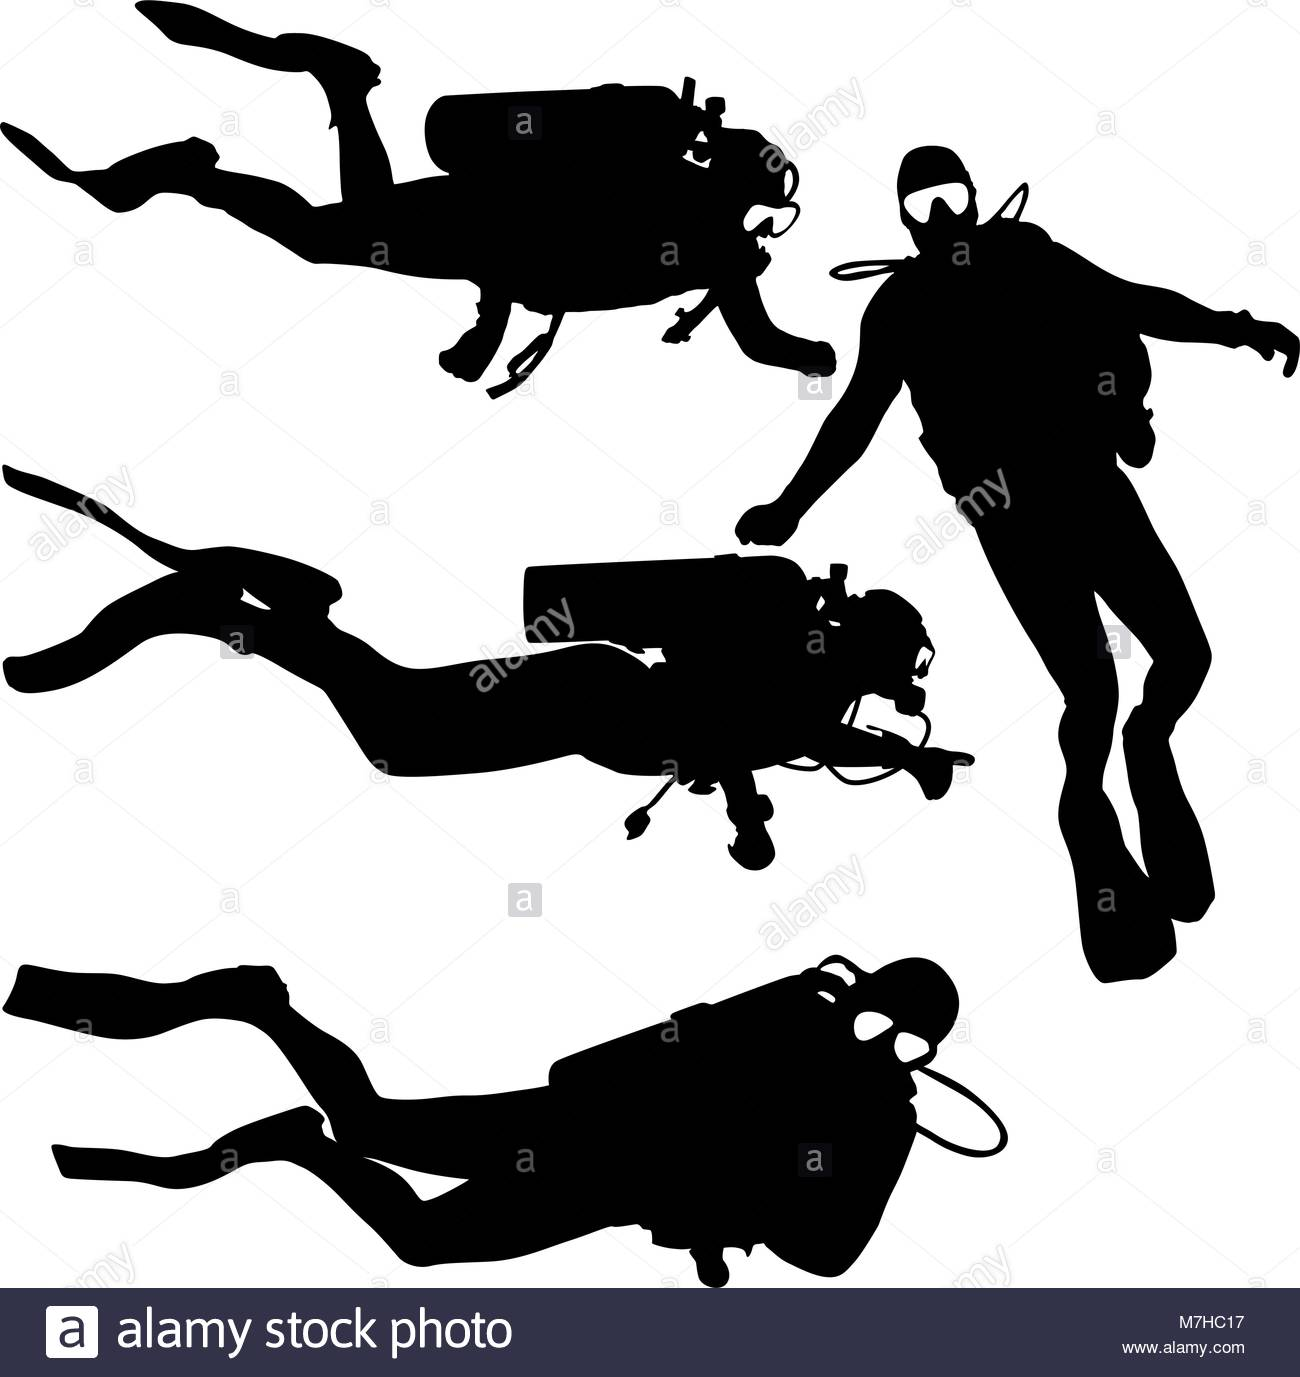 1300x1377 Special Forces Silhouette Stock Vector Images